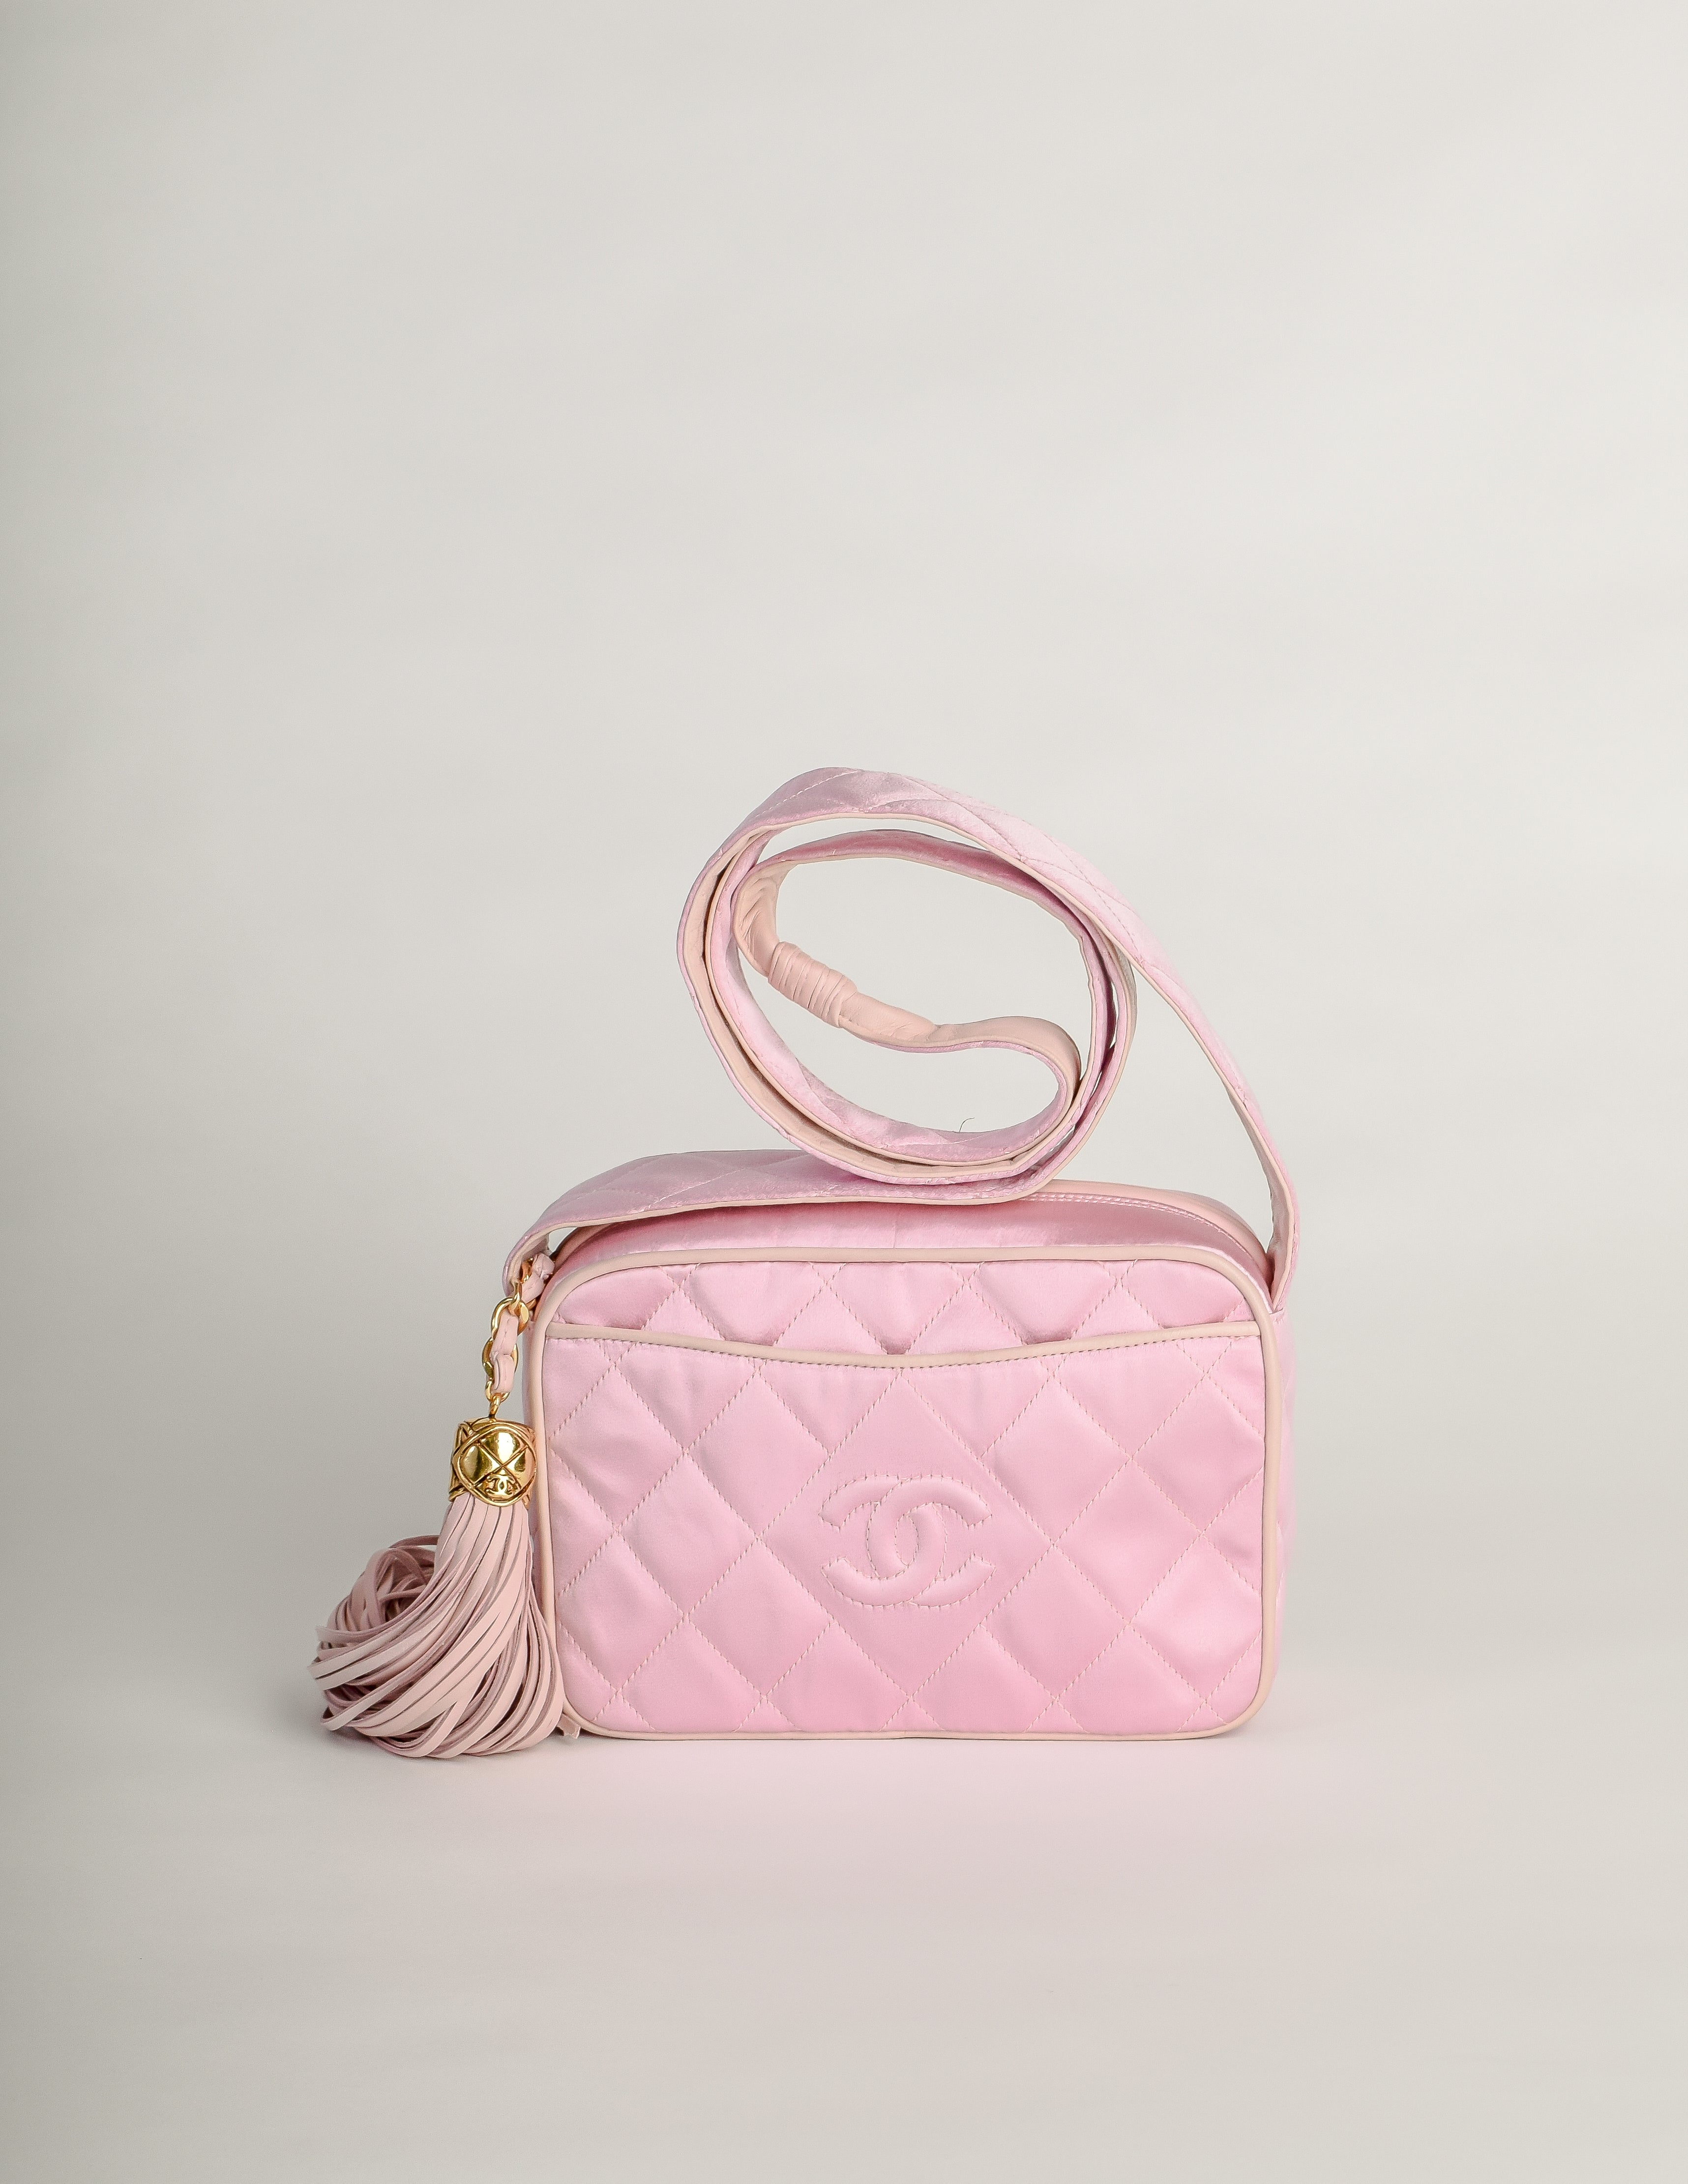 85acca7c9063 Chanel Vintage Quilted Baby Pink Satin Tassel Bag - from Amarcord ...